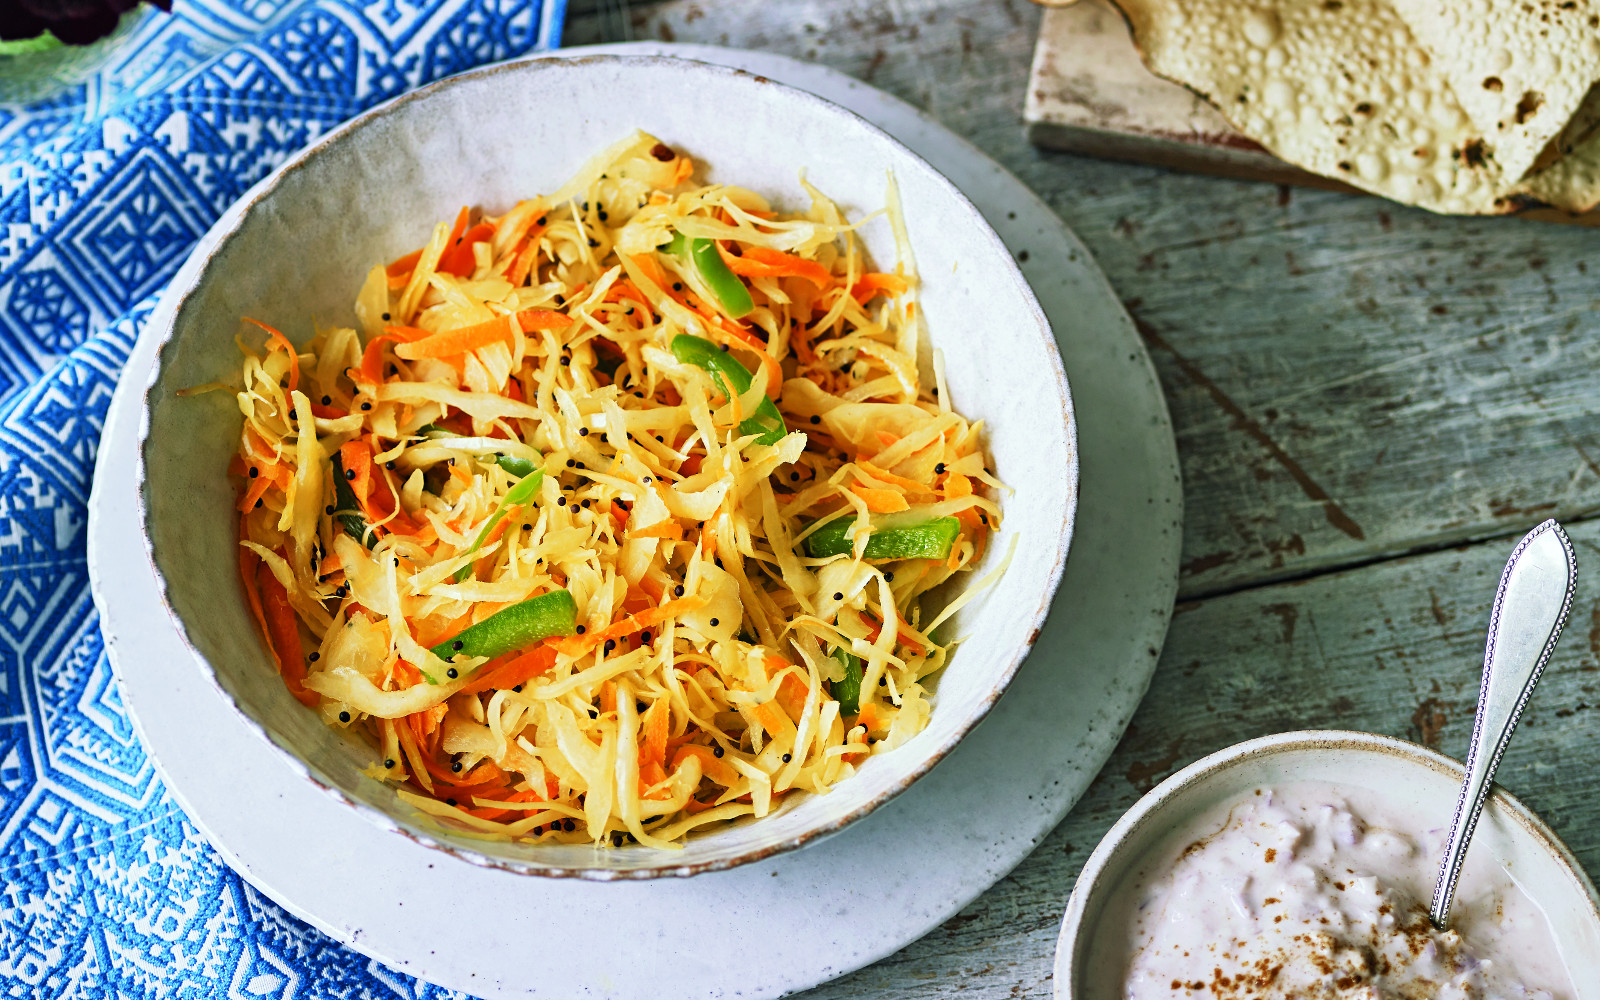 Sambharo: Indian Spiced Carrot and Cabbage Salad [Vegan, Gluten-Free]